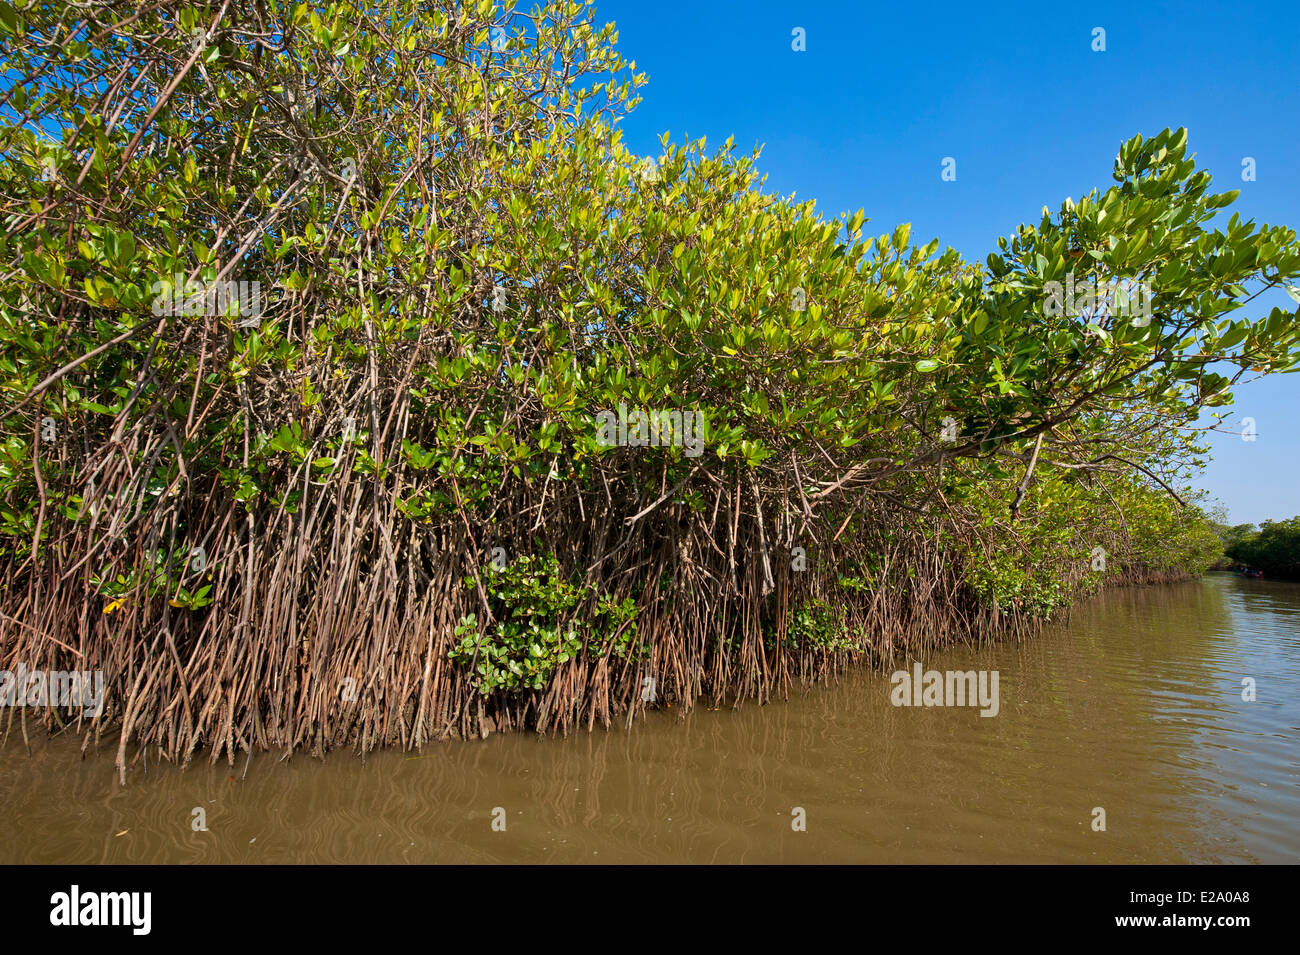 managing and protecting the mangrove forestry Around the world to conserve, rehabilitate and manage mangroves sustainably,  but the  protection agency, accra) and mr edward obiaw (ghana forestry.